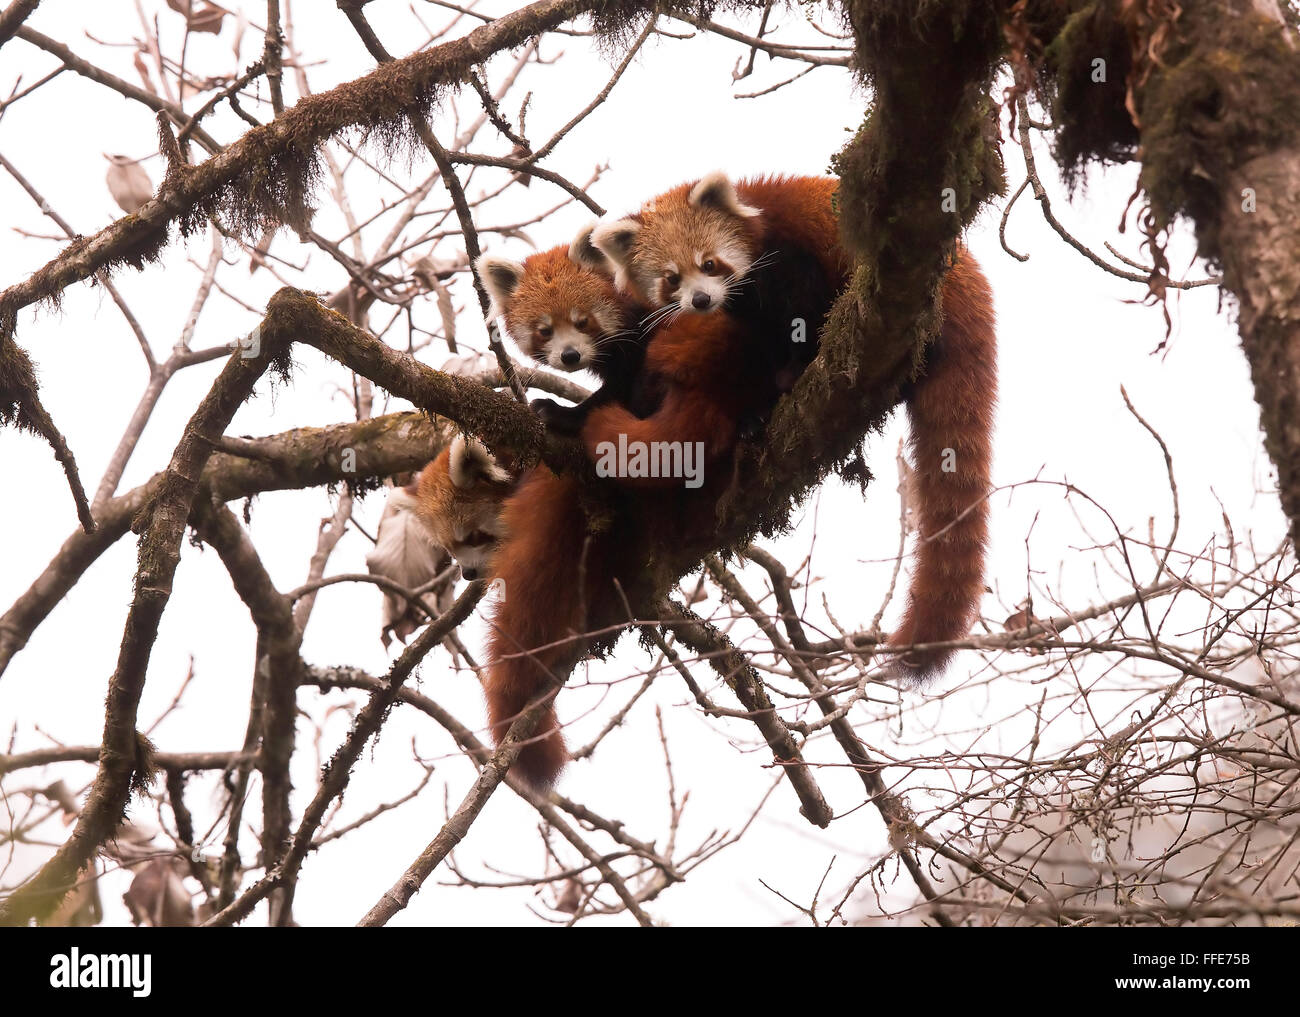 Wild Red Pandas in Eastern Himalayas of India - Stock Image